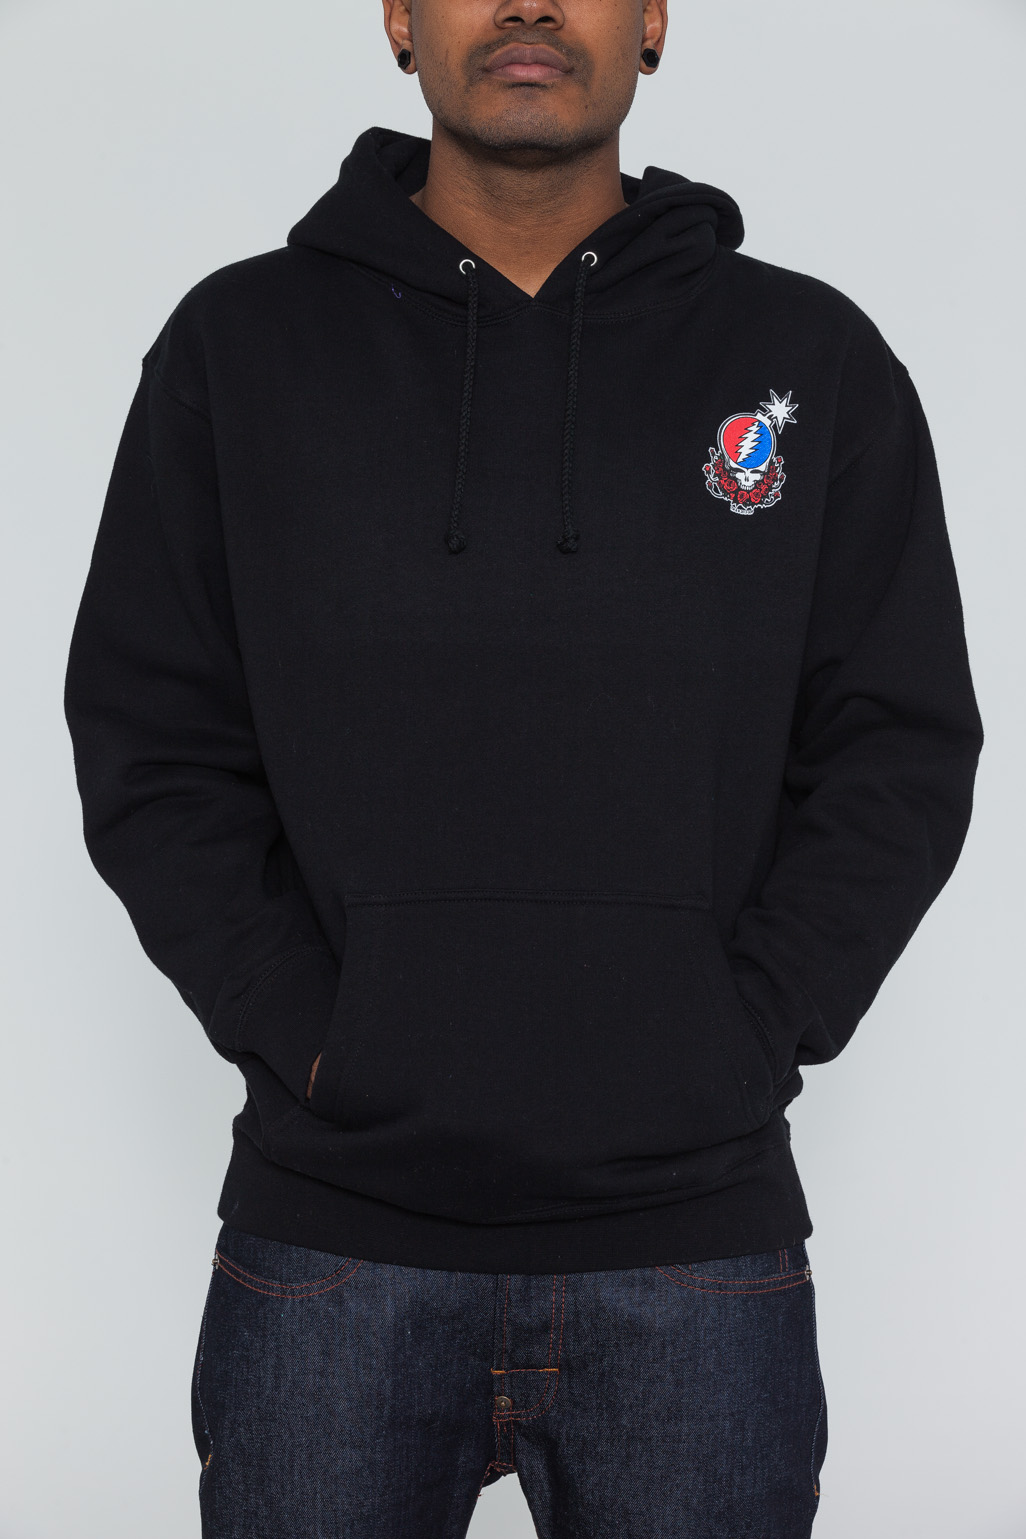 Steal Your Face Pullover